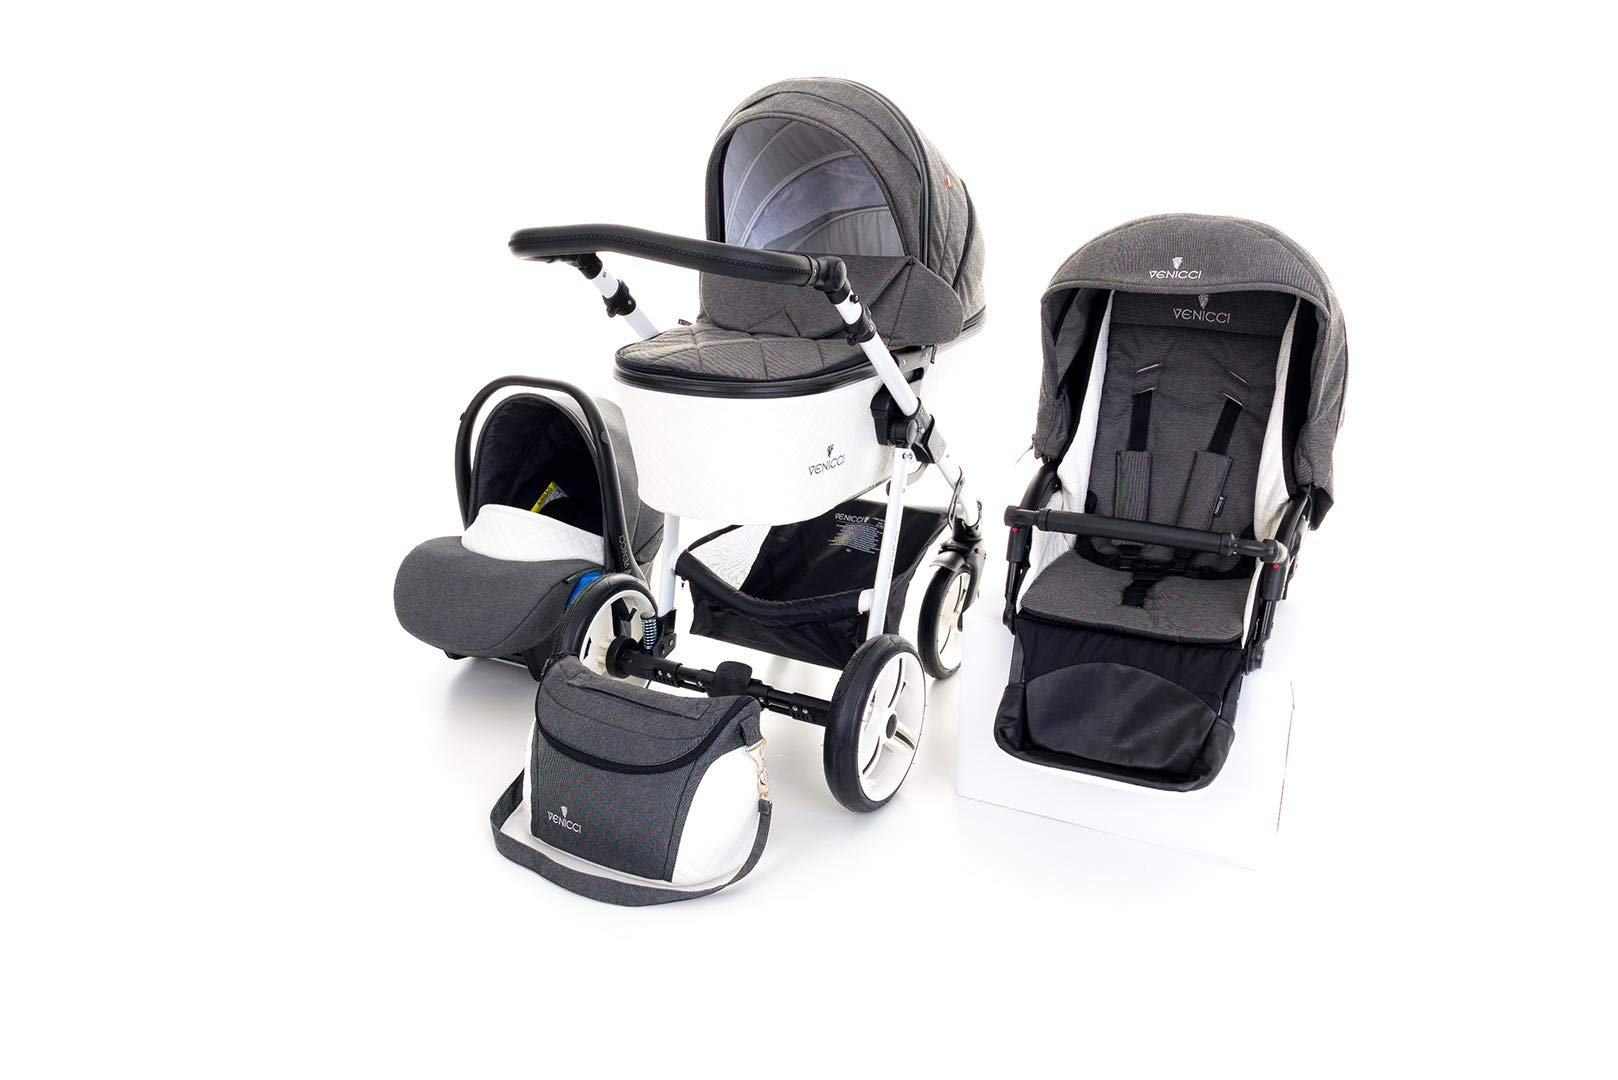 Venicci Pure 3-in-1 Travel System - Denim Black - with Carrycot + Car Seat + Changing Bag + Apron + Raincover + Mosquito Net + 5-Point Harness and UV 50+ Fabric + Car Seat Adapters + Cup Holder  3 in 1 Travel System with included Group 0+ Car Seat Suitable for your baby from birth until 36 months 5-point harness to enhance the safety of your child 6